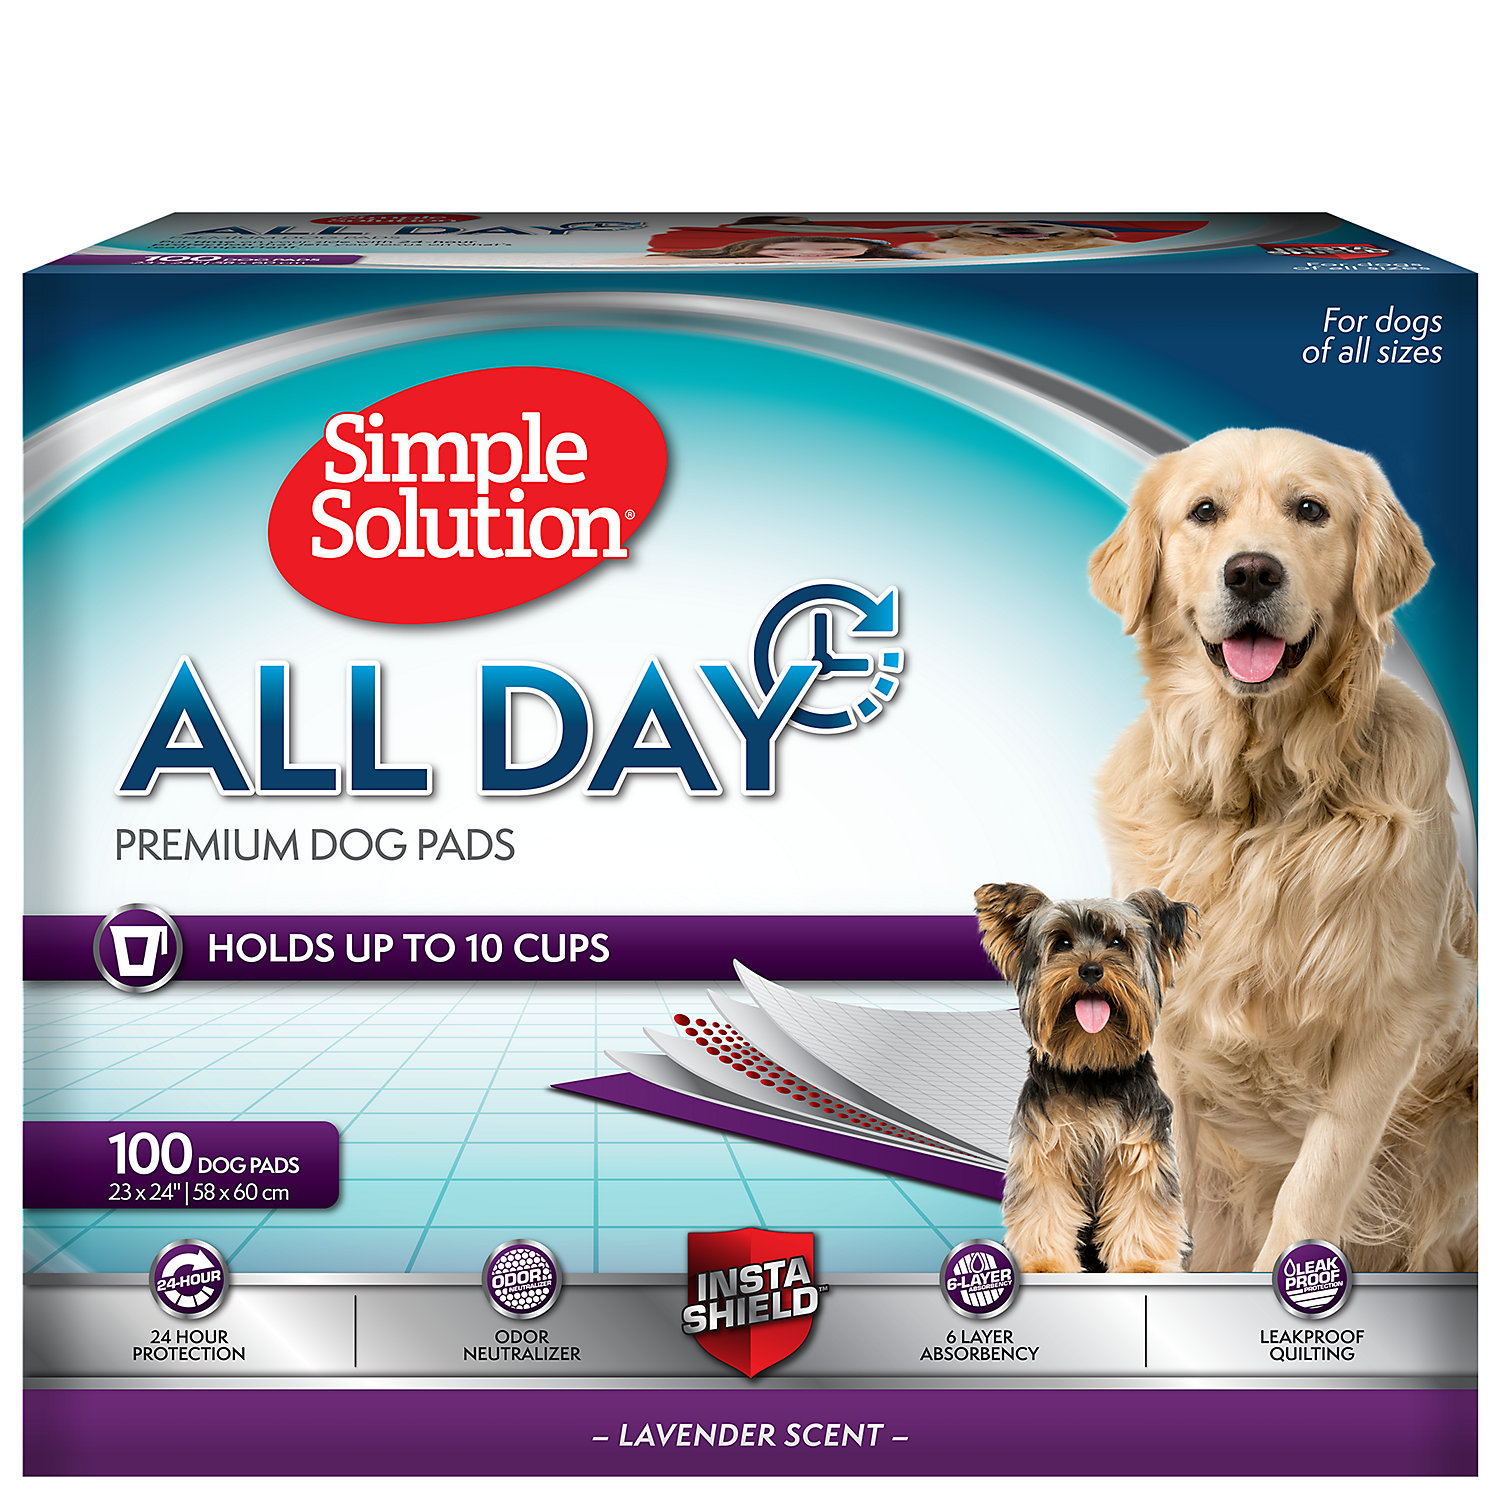 Simple Solution 6 Layer All Day Premium Dog Pads Count Of 100